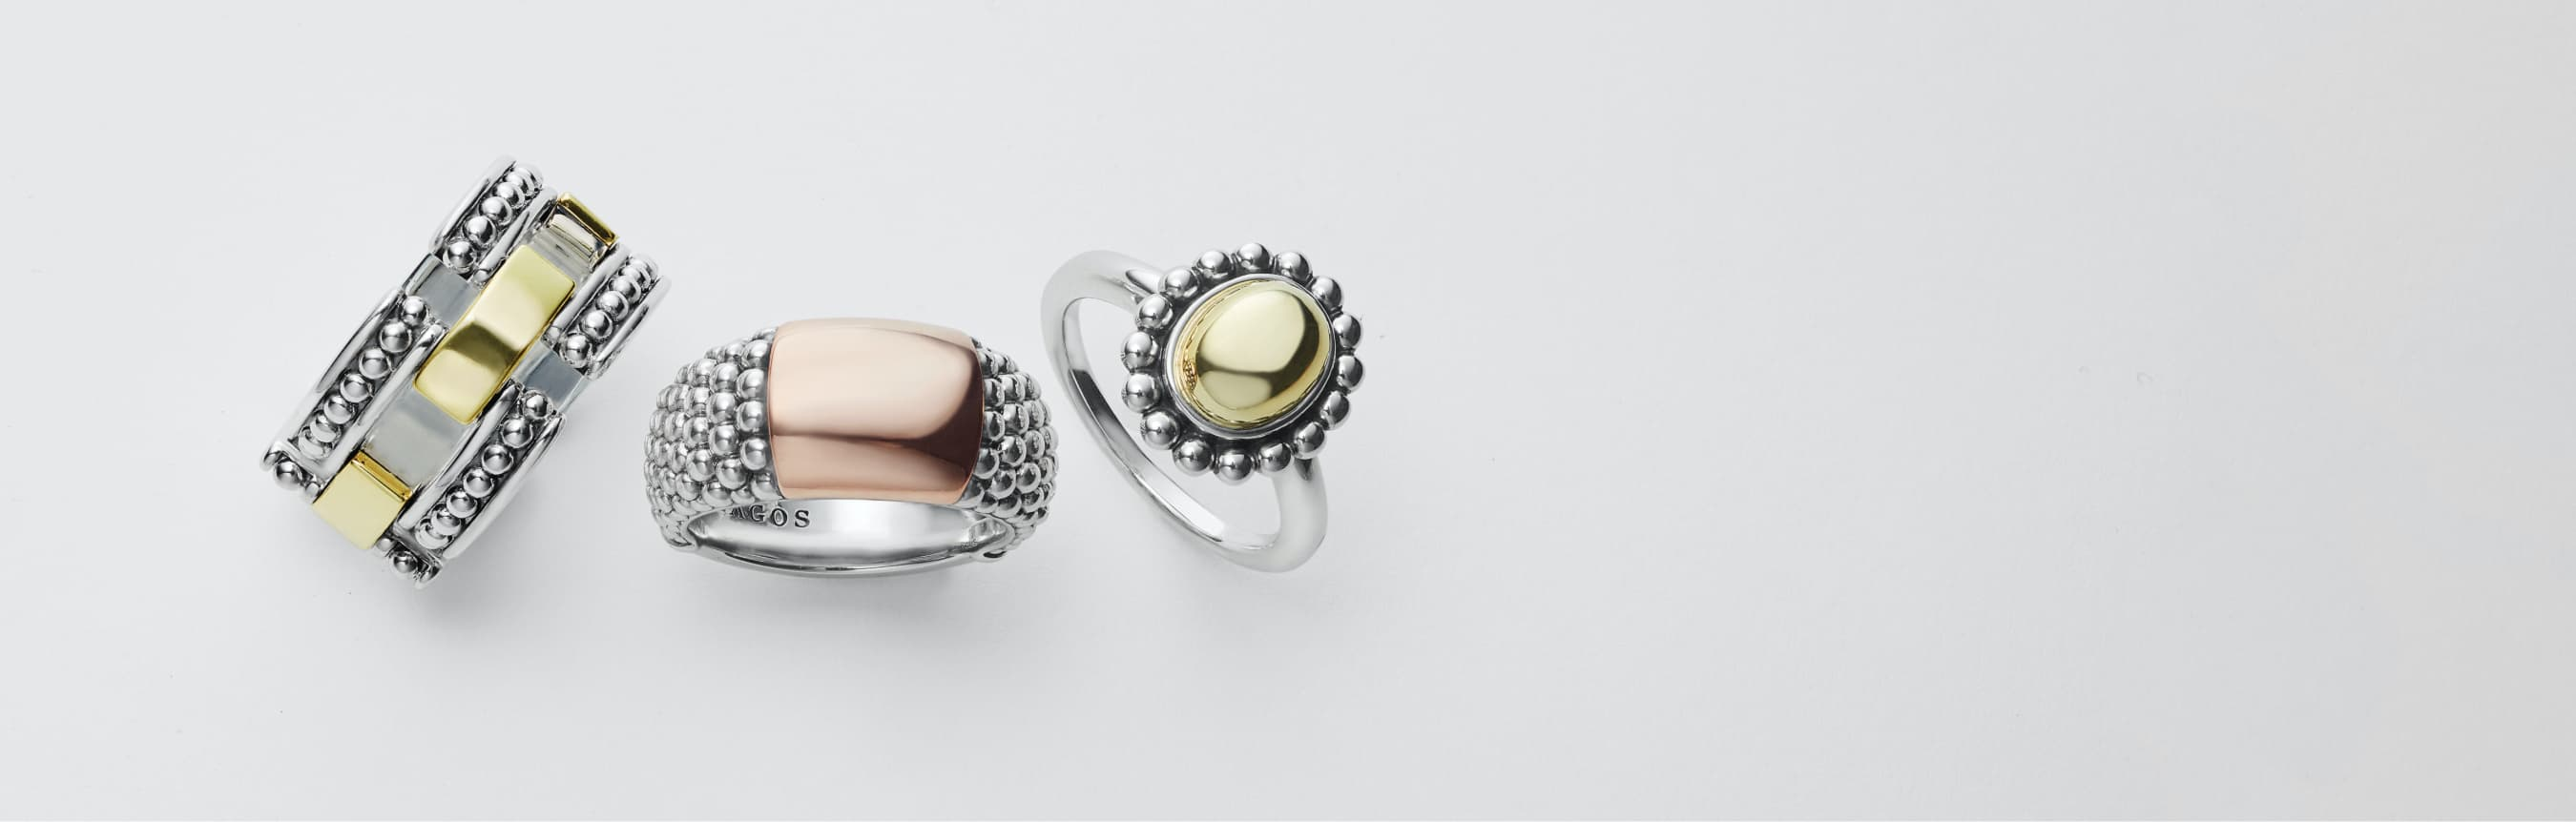 Rings from left to right: Caviar Gold Diamond Color Switch ring in blue, 2 Caviar Spark Diamond Ringe in silver, blue ceramic Caviar Diamond Ring.